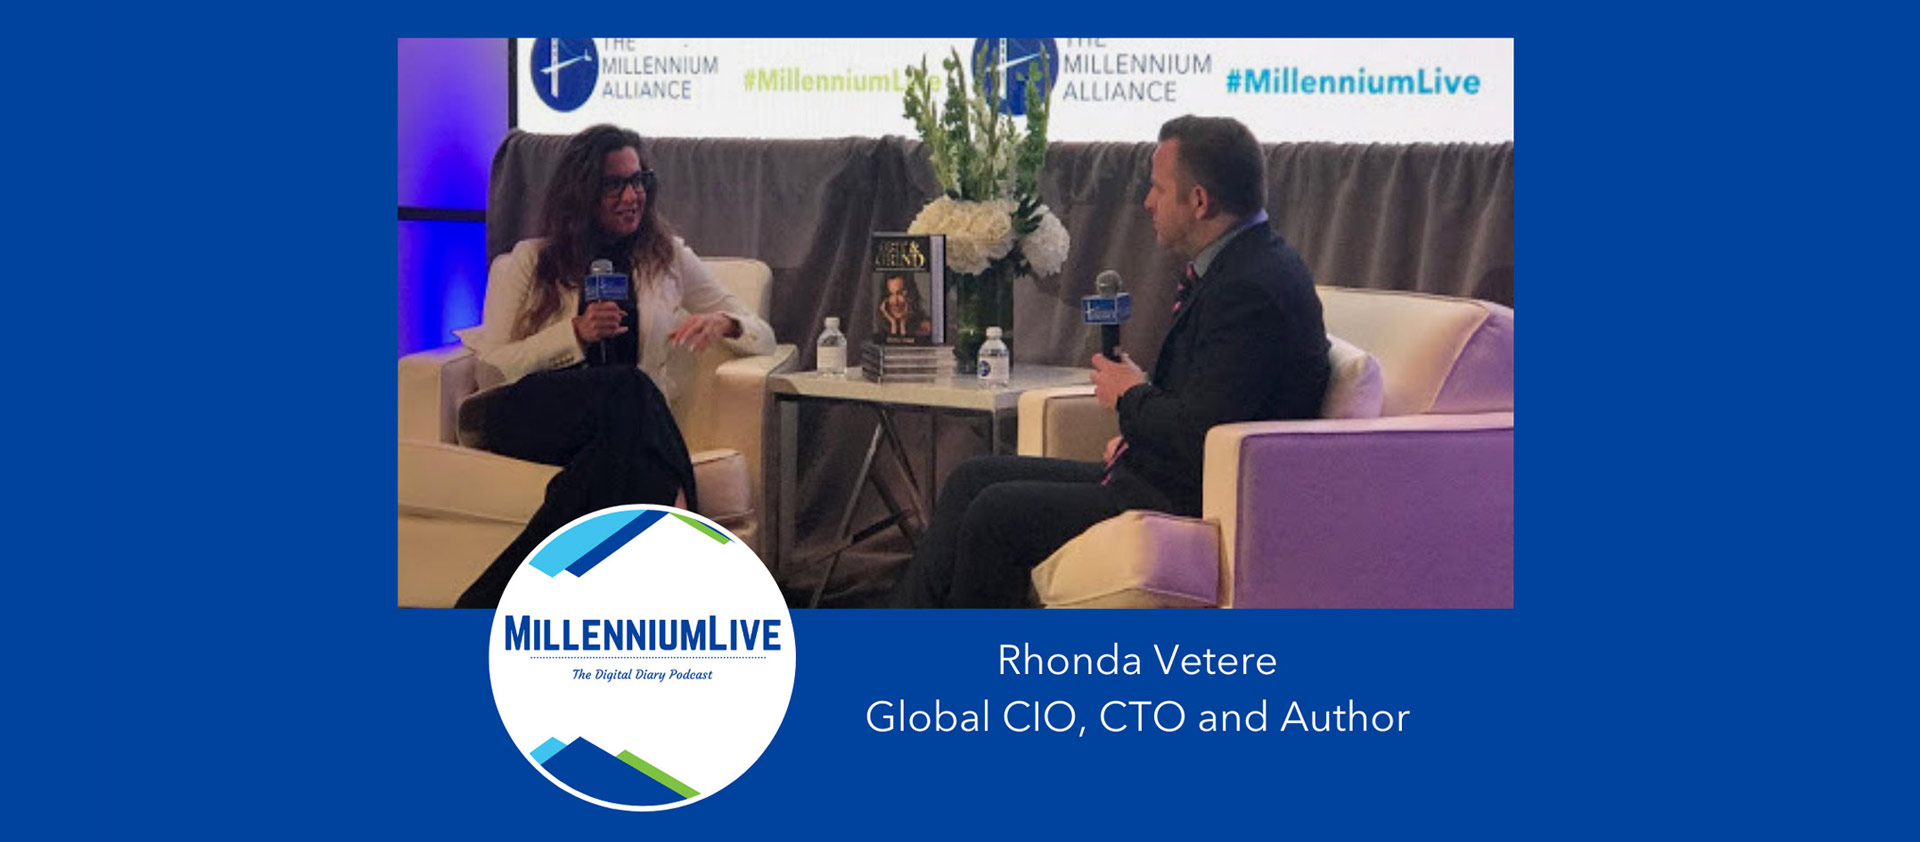 Rhonda Vetere Interview with the Millenium Alliance